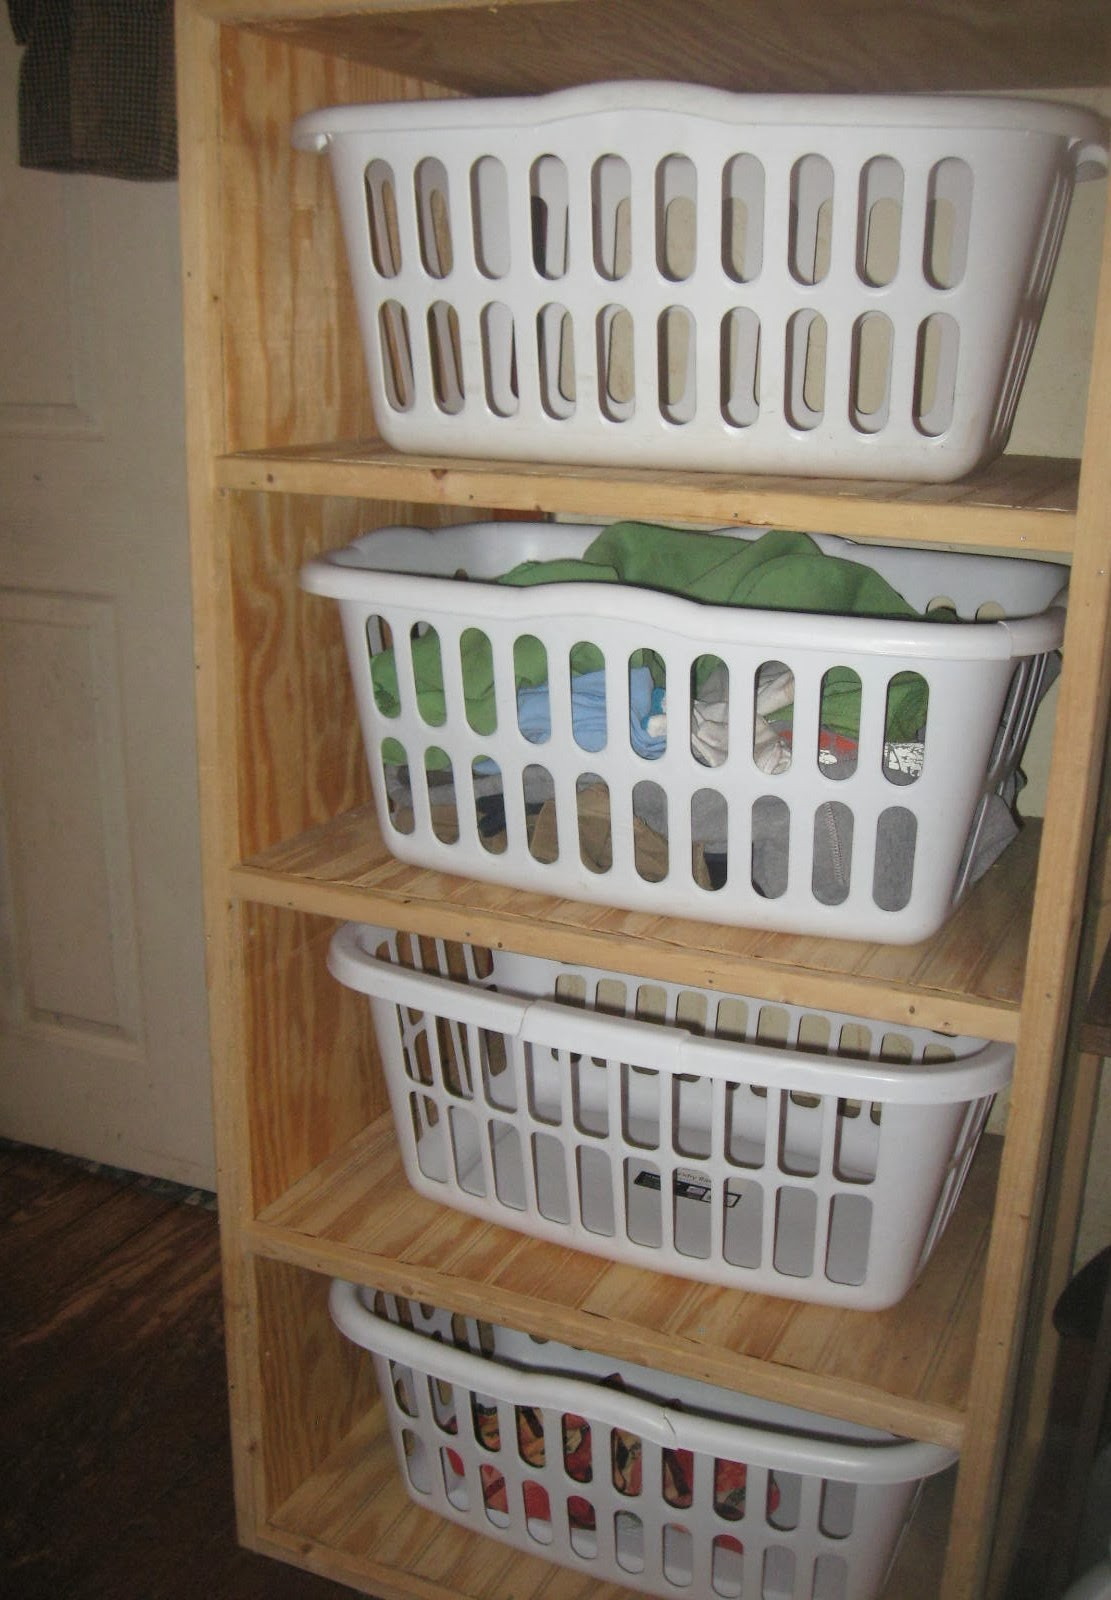 Laundry Basket With Shelves Simply Organized Homemaking Organizing Your Laundry